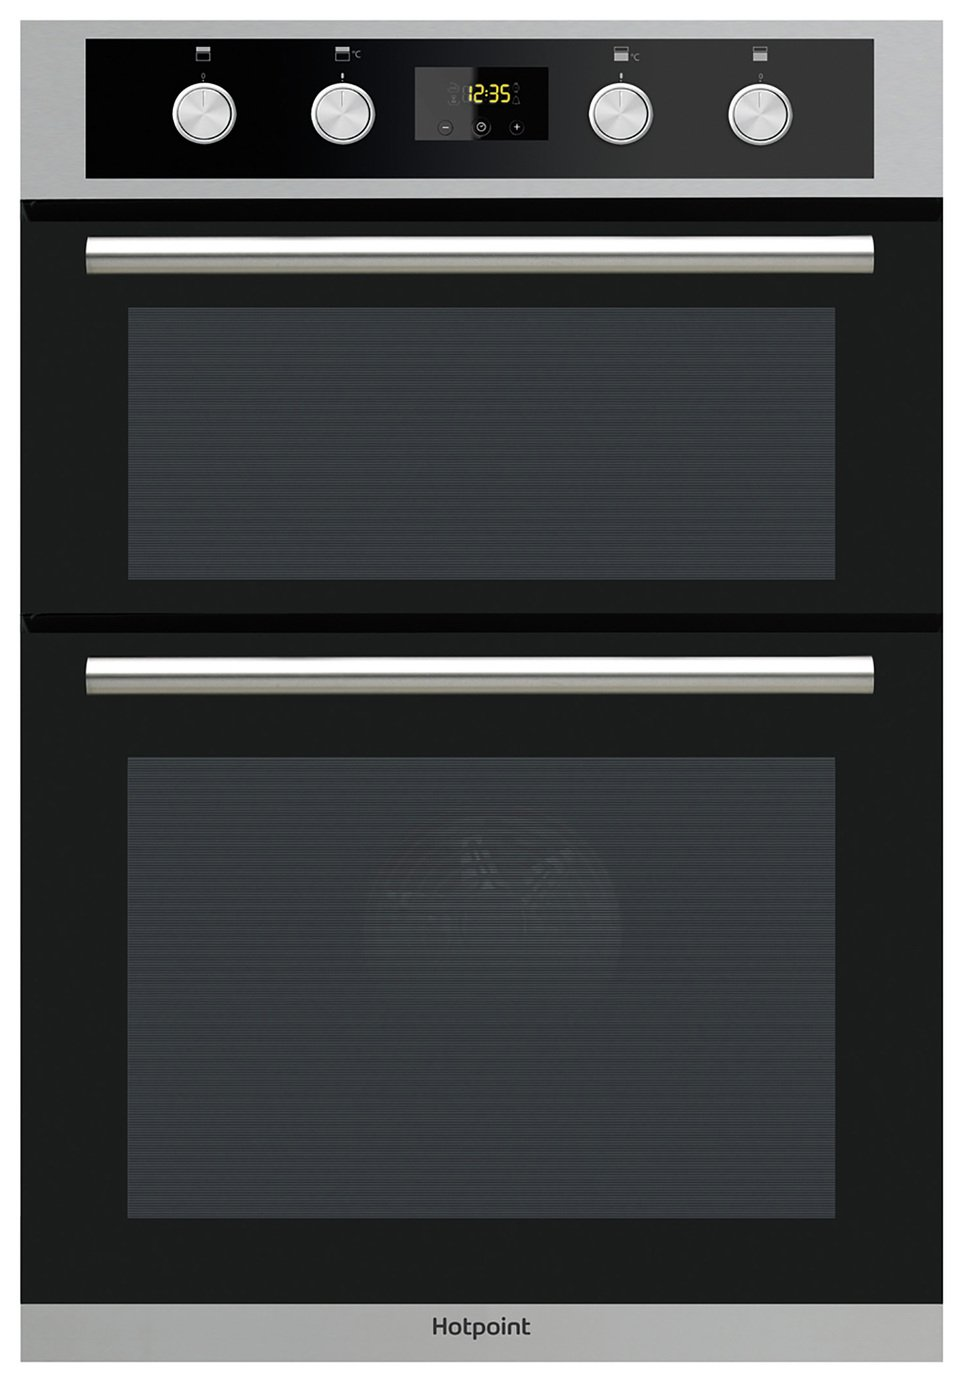 Hotpoint DD2844CIX Built-in Electric Double Oven - S/ Steel